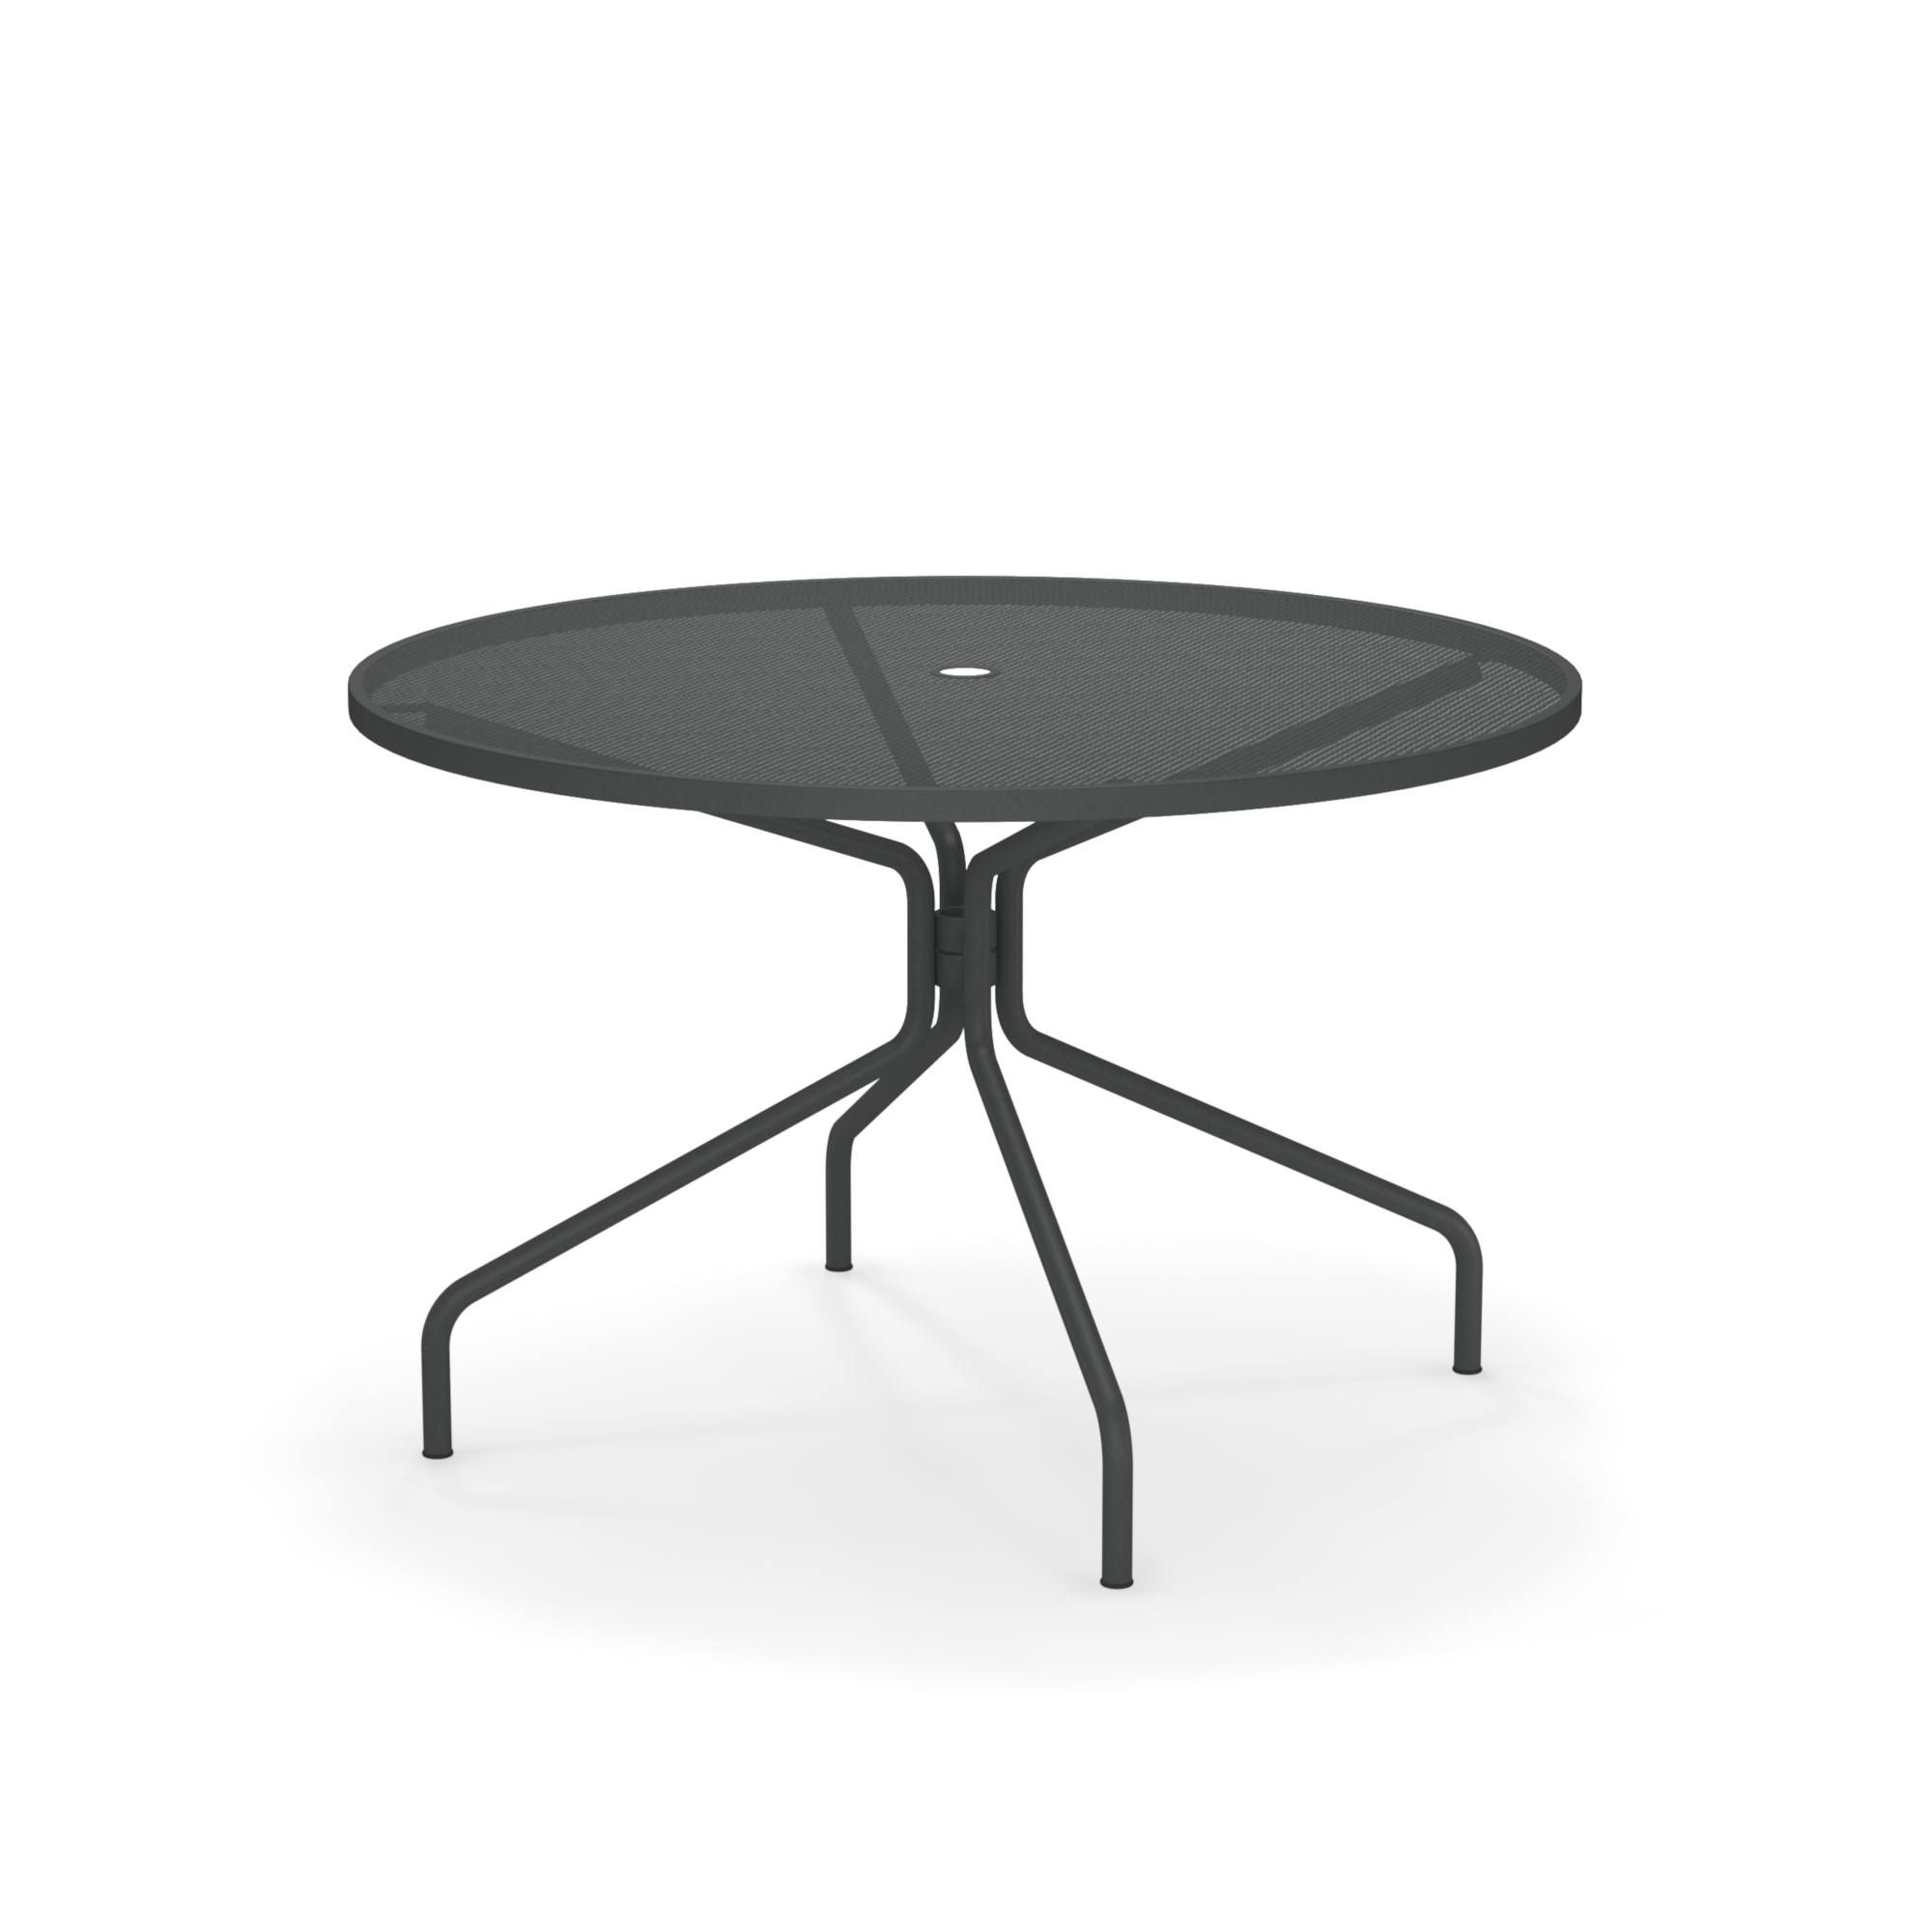 emuamericas, llc 805-22 table, outdoor